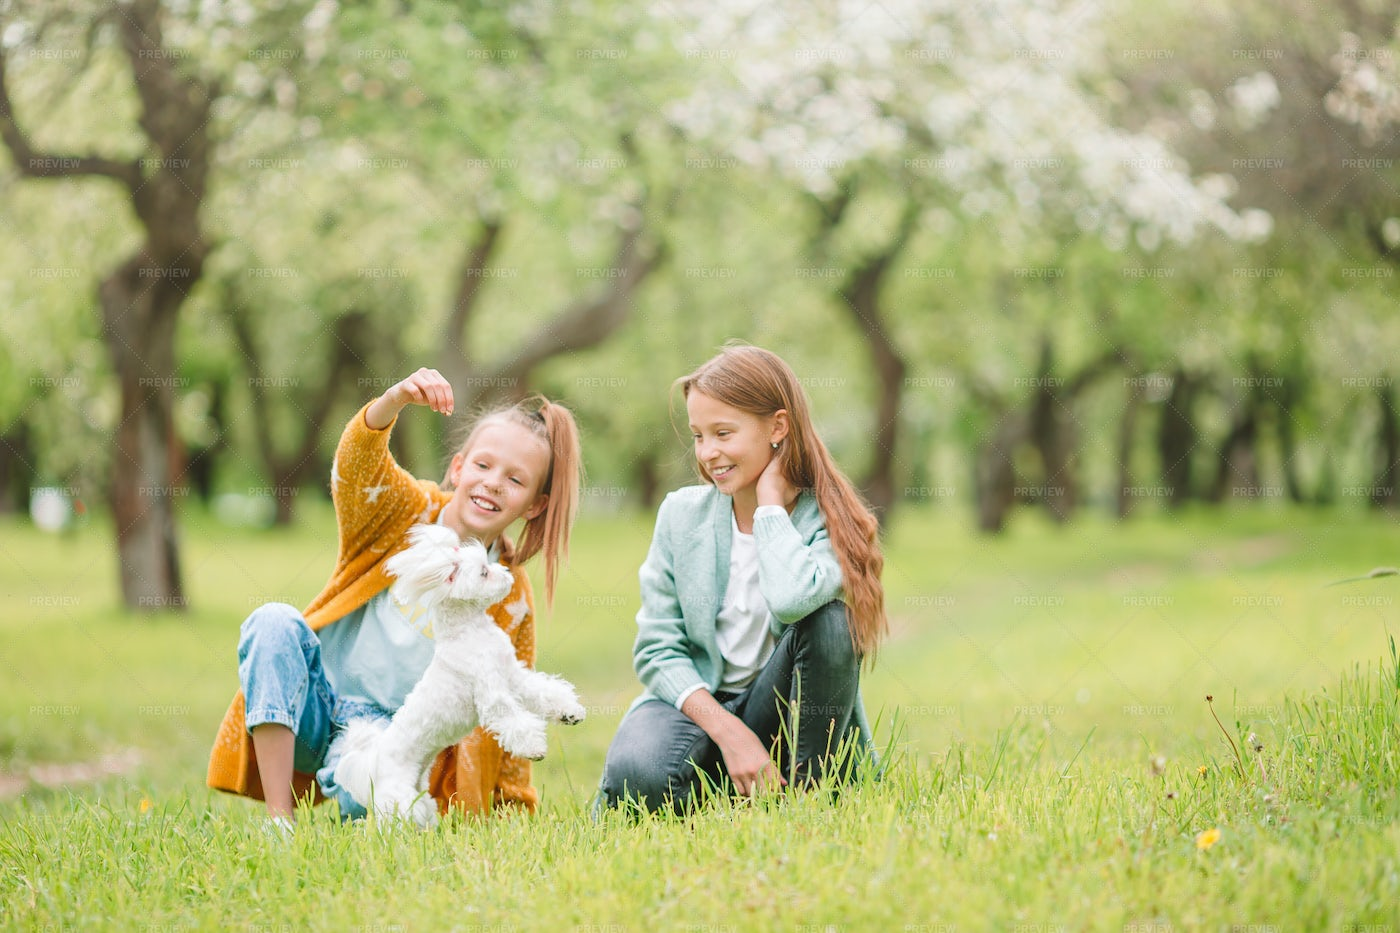 Playing With Their Puppy: Stock Photos